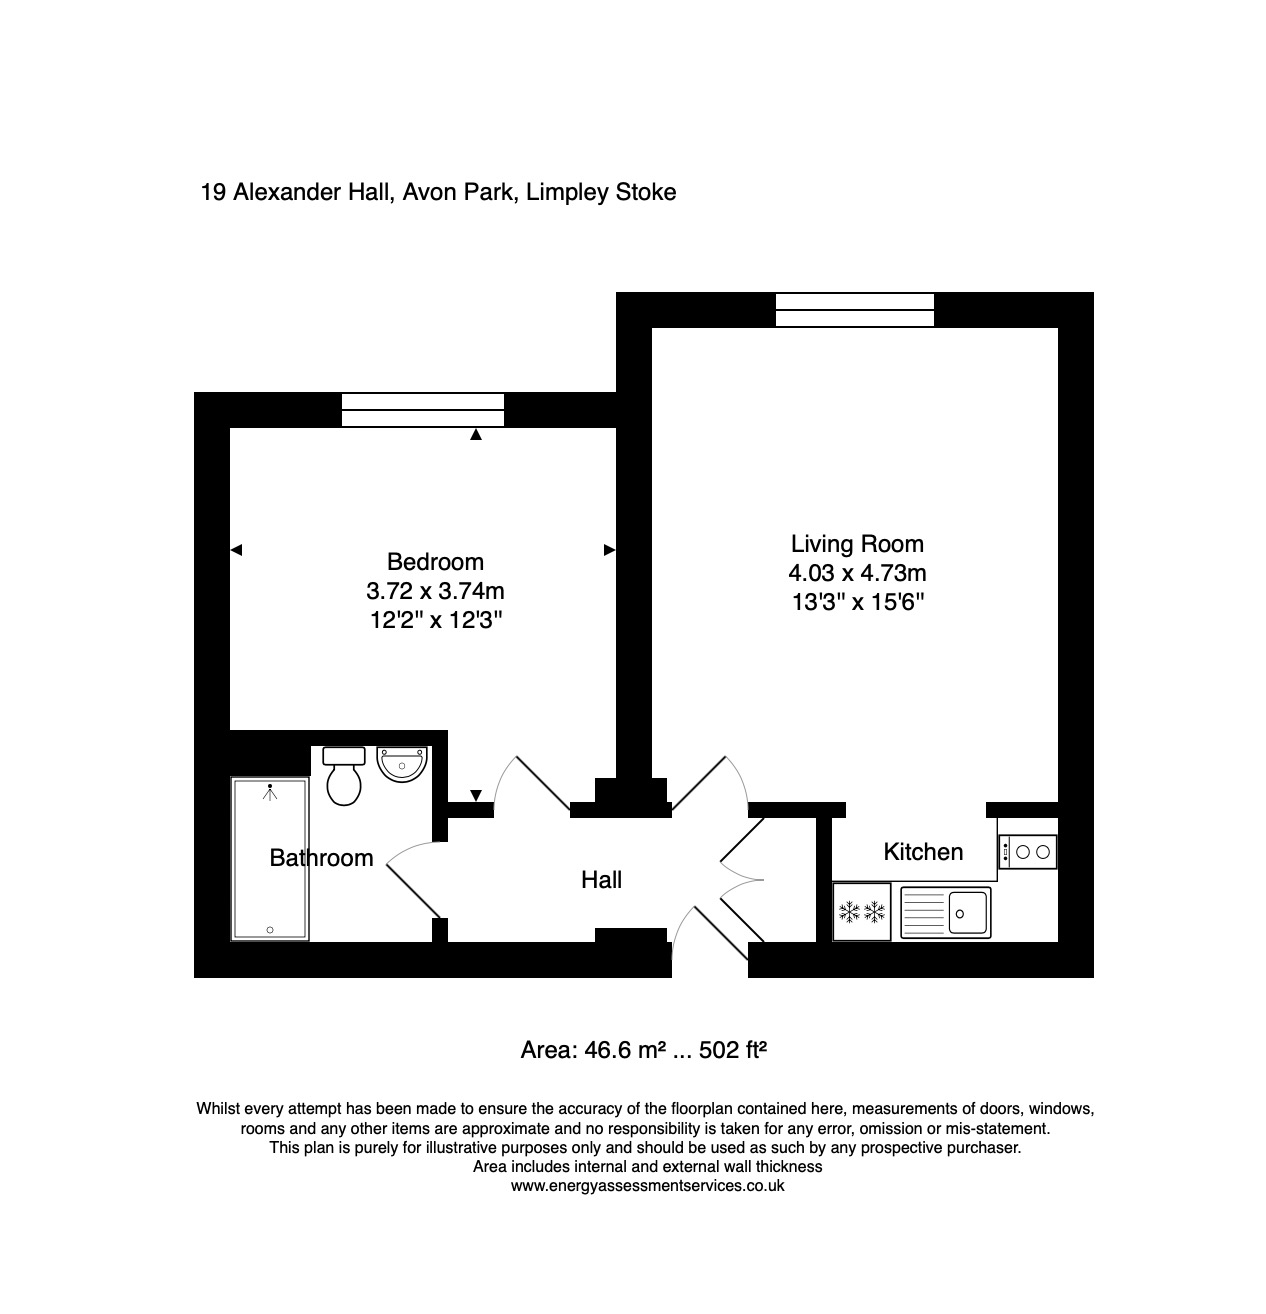 19 Alexander Hall Floorplan